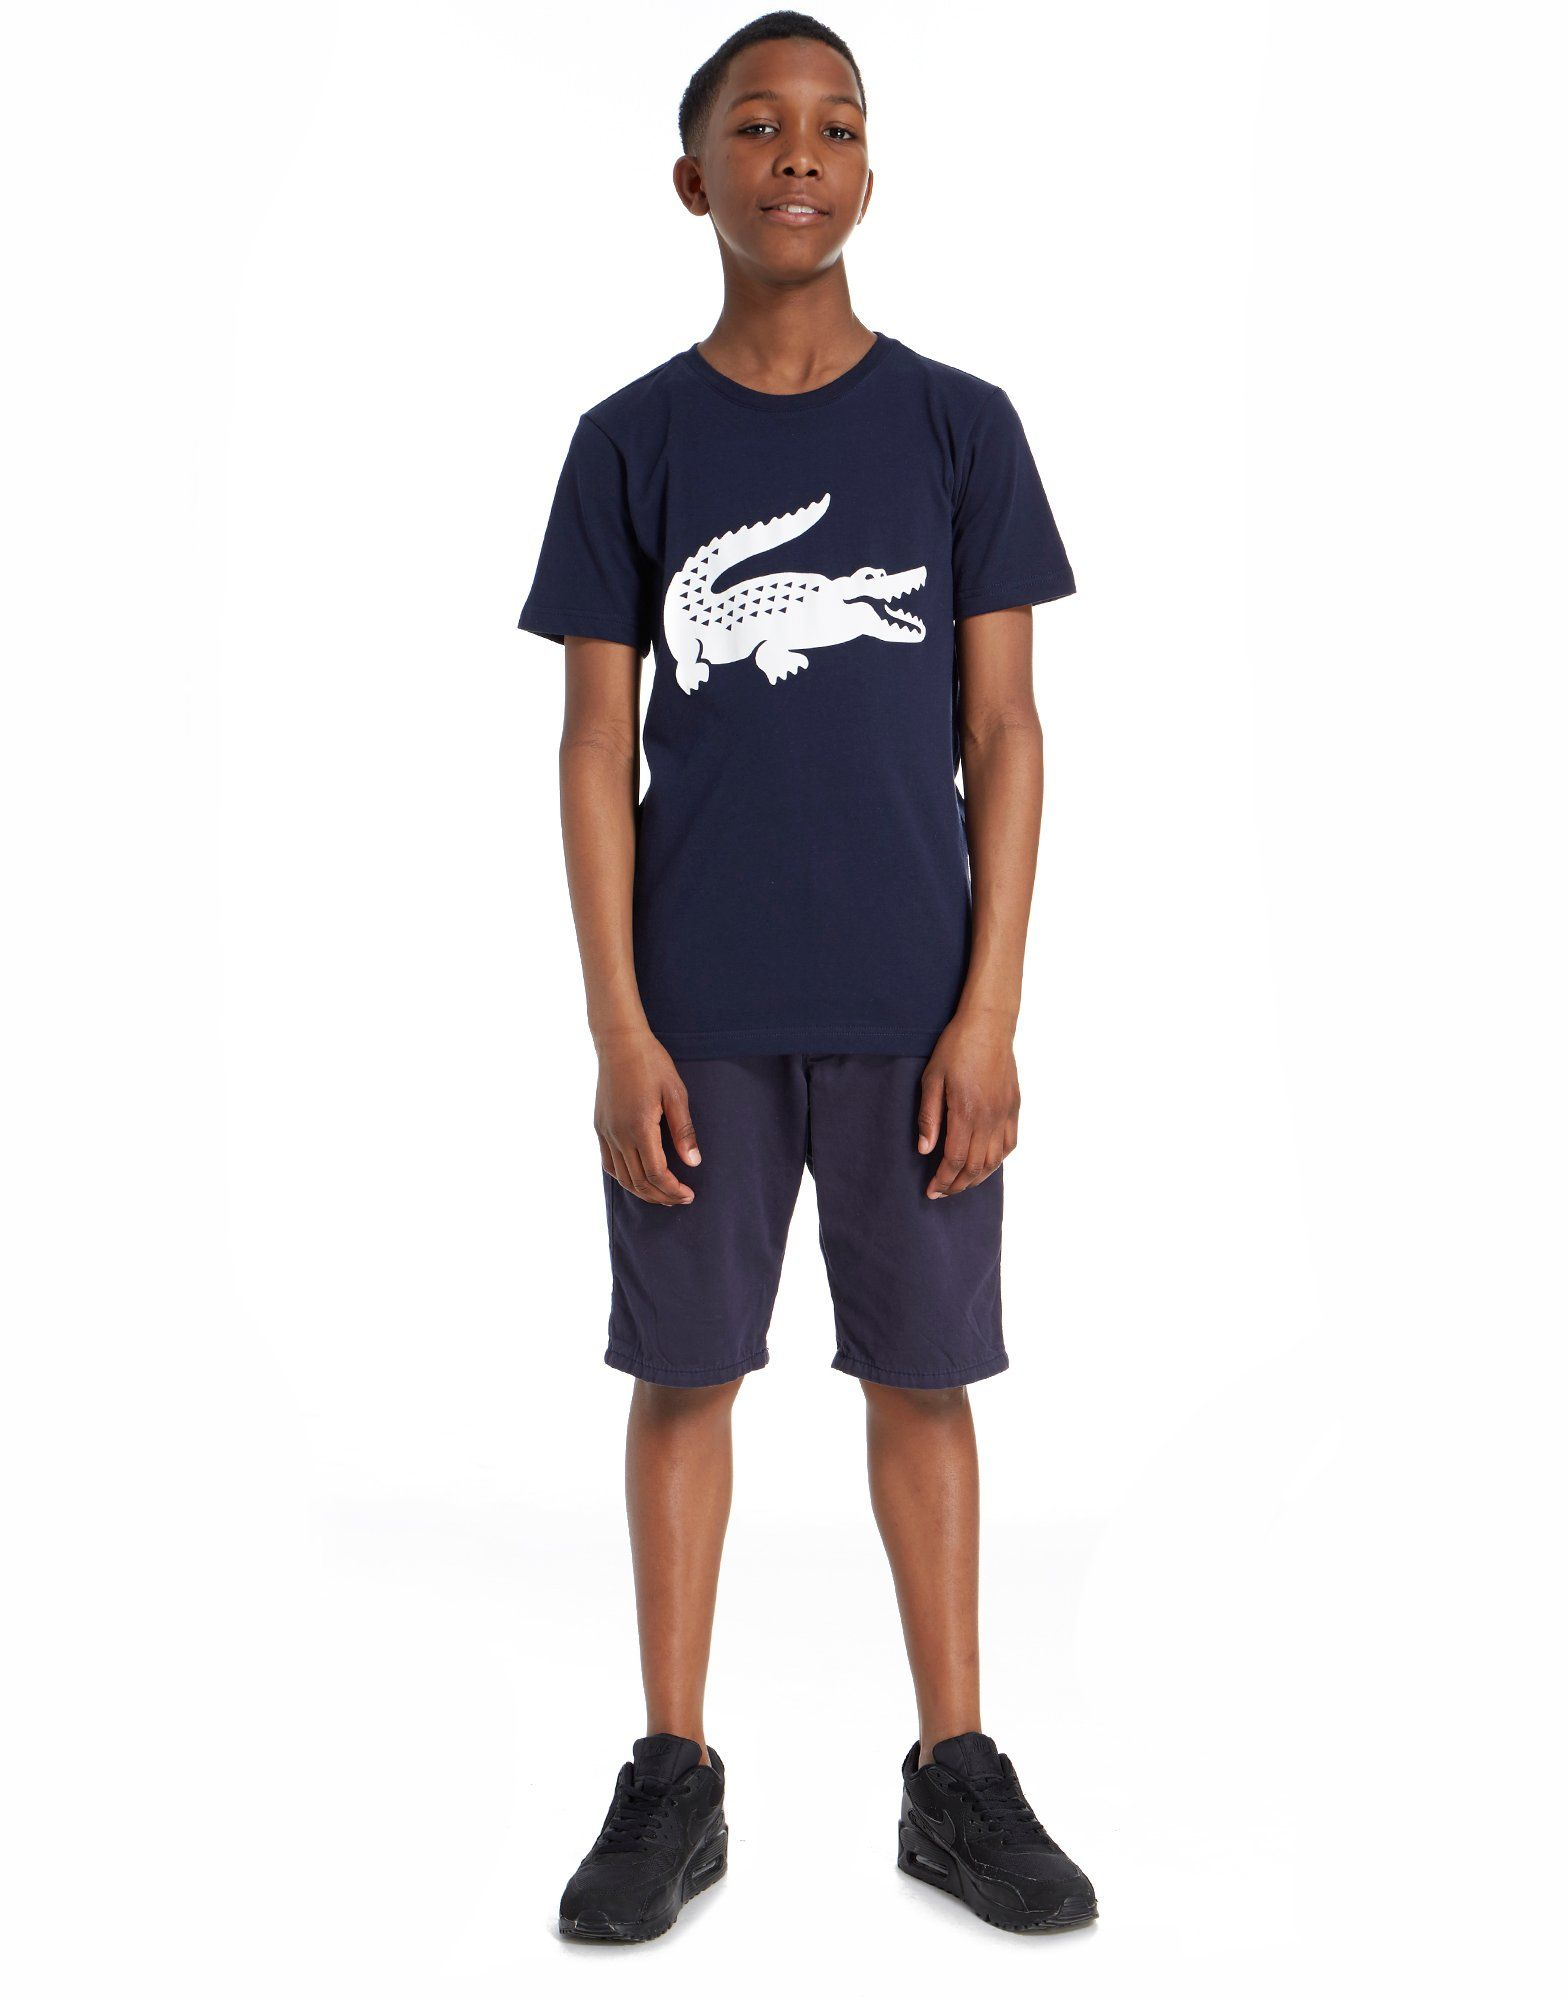 Lacoste Croc T-Shirt Junior